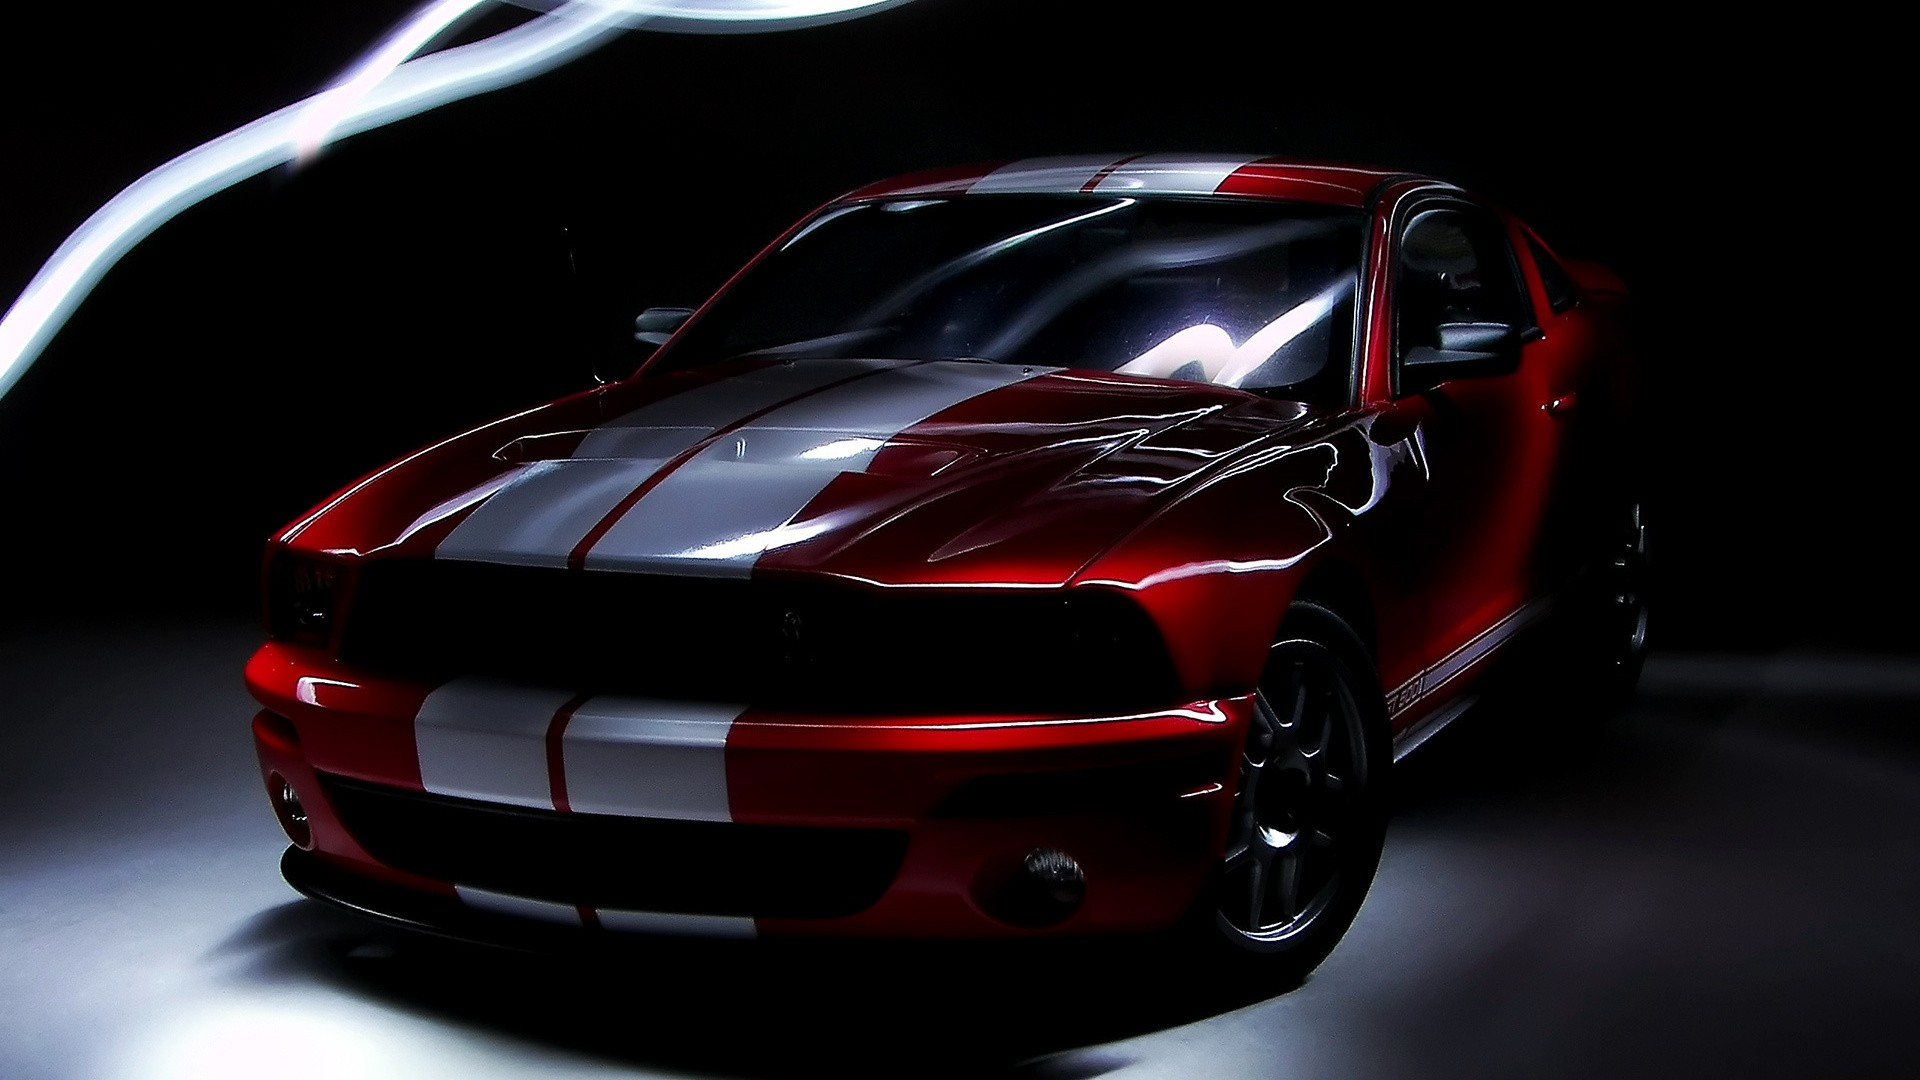 Tags hd mustang wallpaper 1920x1080